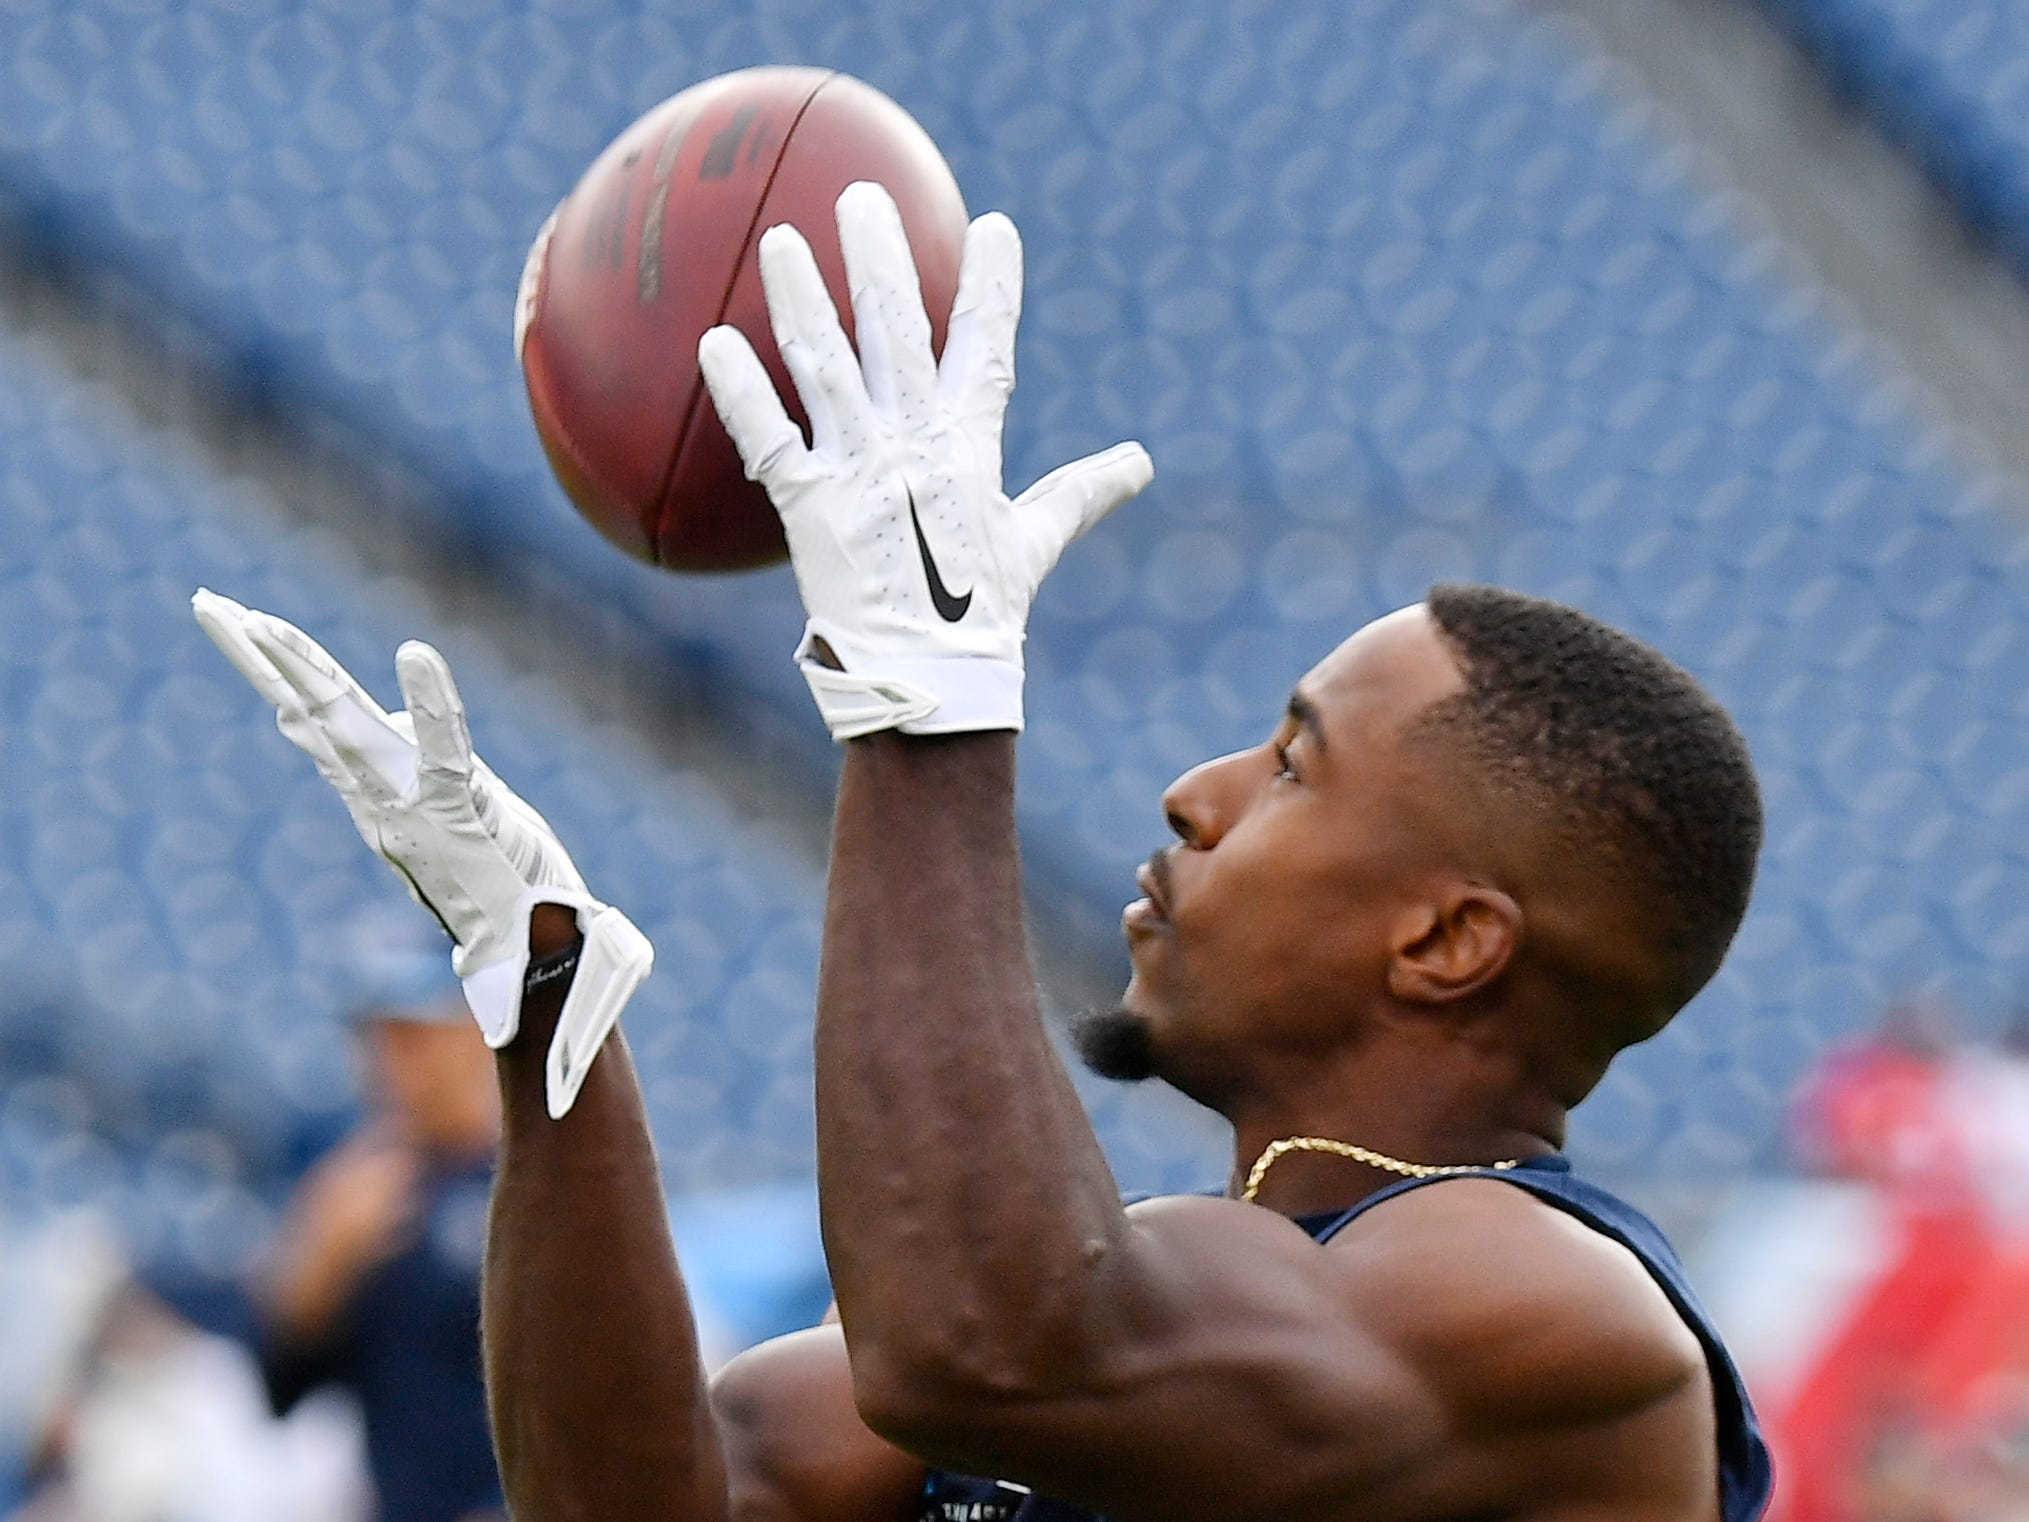 Titans wide receiver Darius Jennings (15) makes a catch during warmups before the game against the Texans at Nissan Stadium Sunday, Sept. 16, 2018, in Nashville, Tenn.